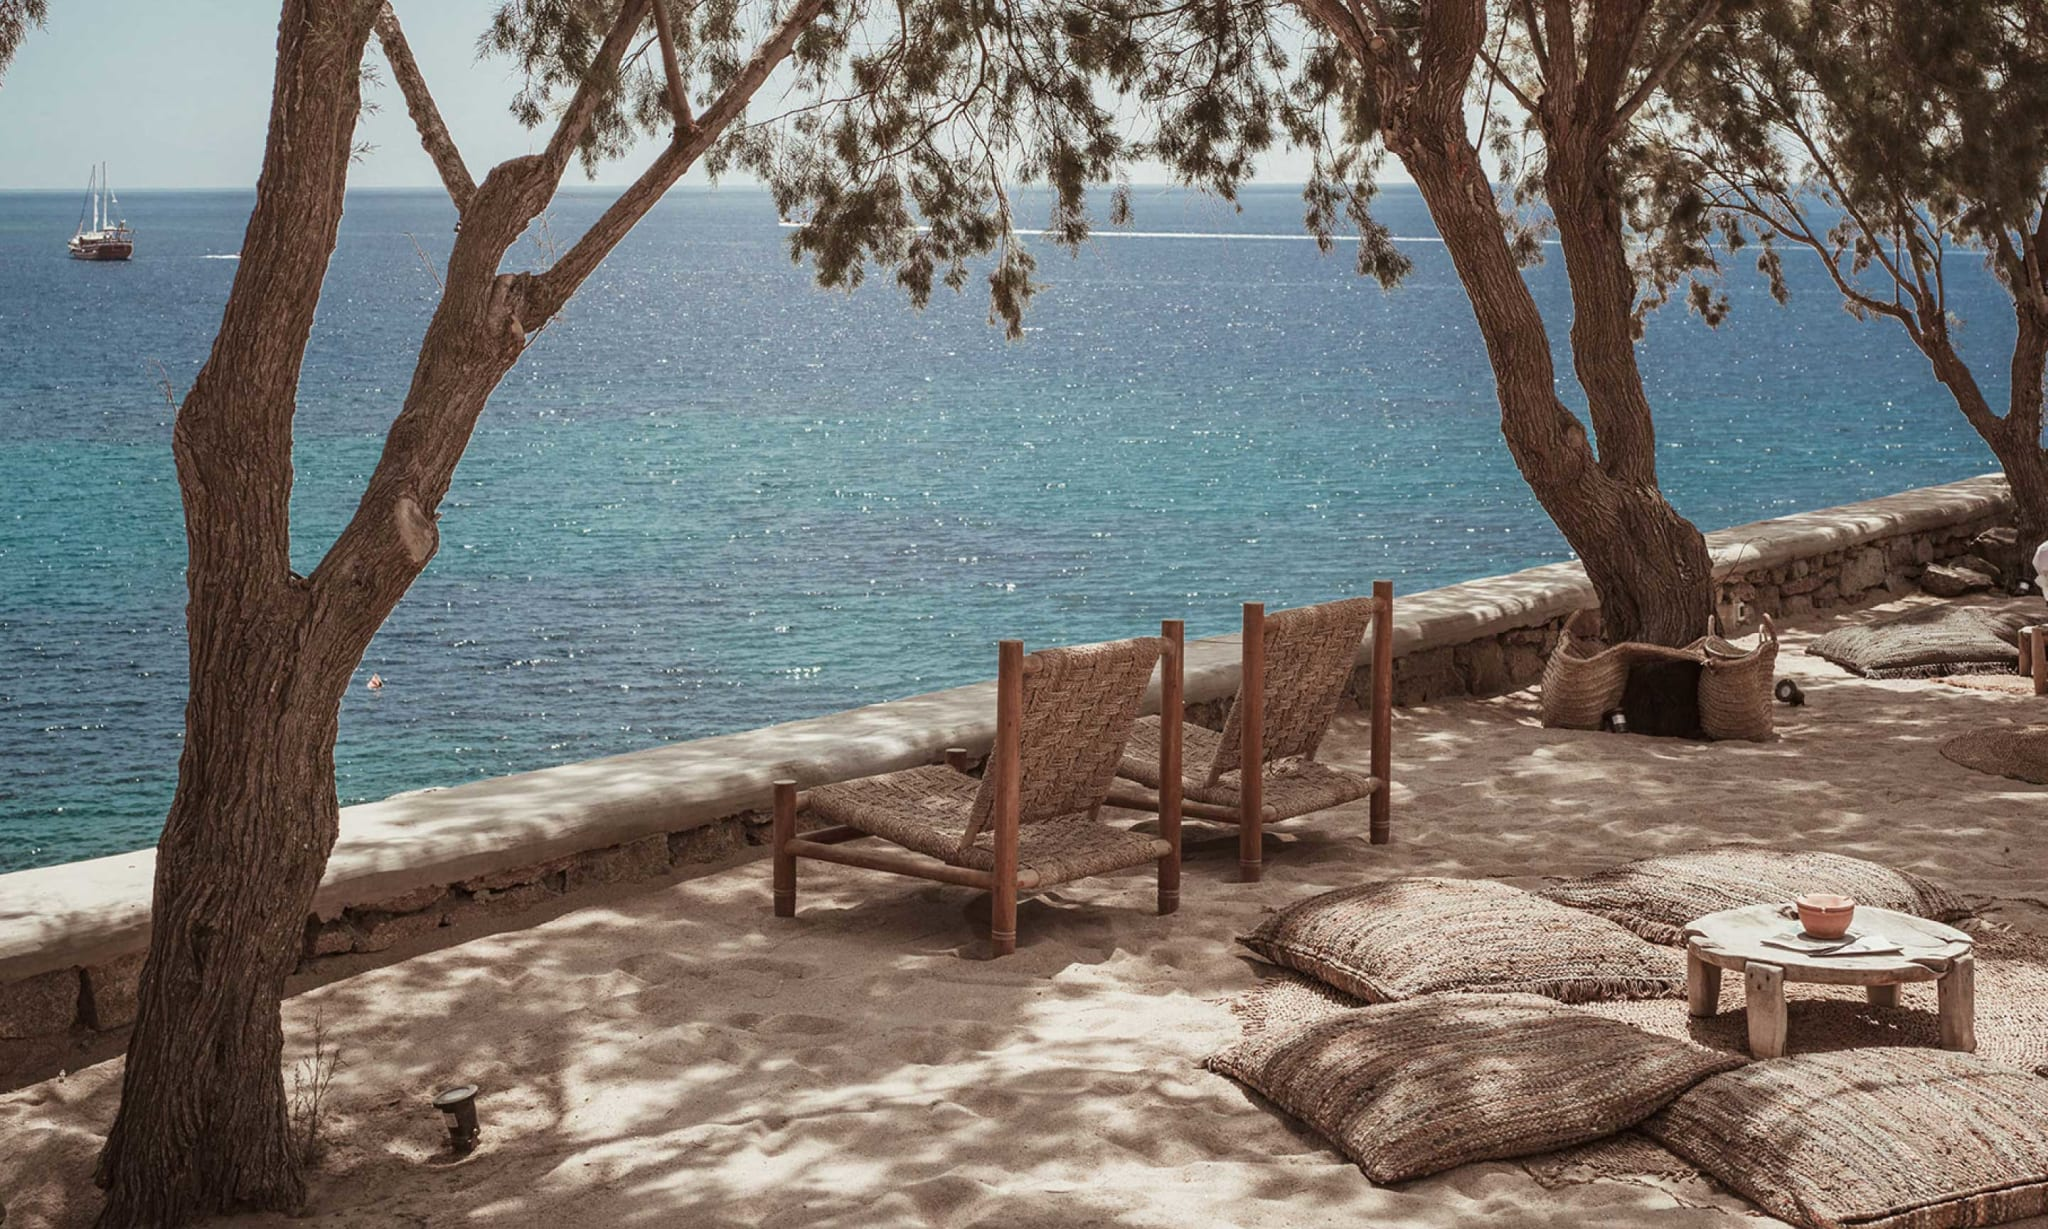 Two loungers overlooking the sea underneath some trees.